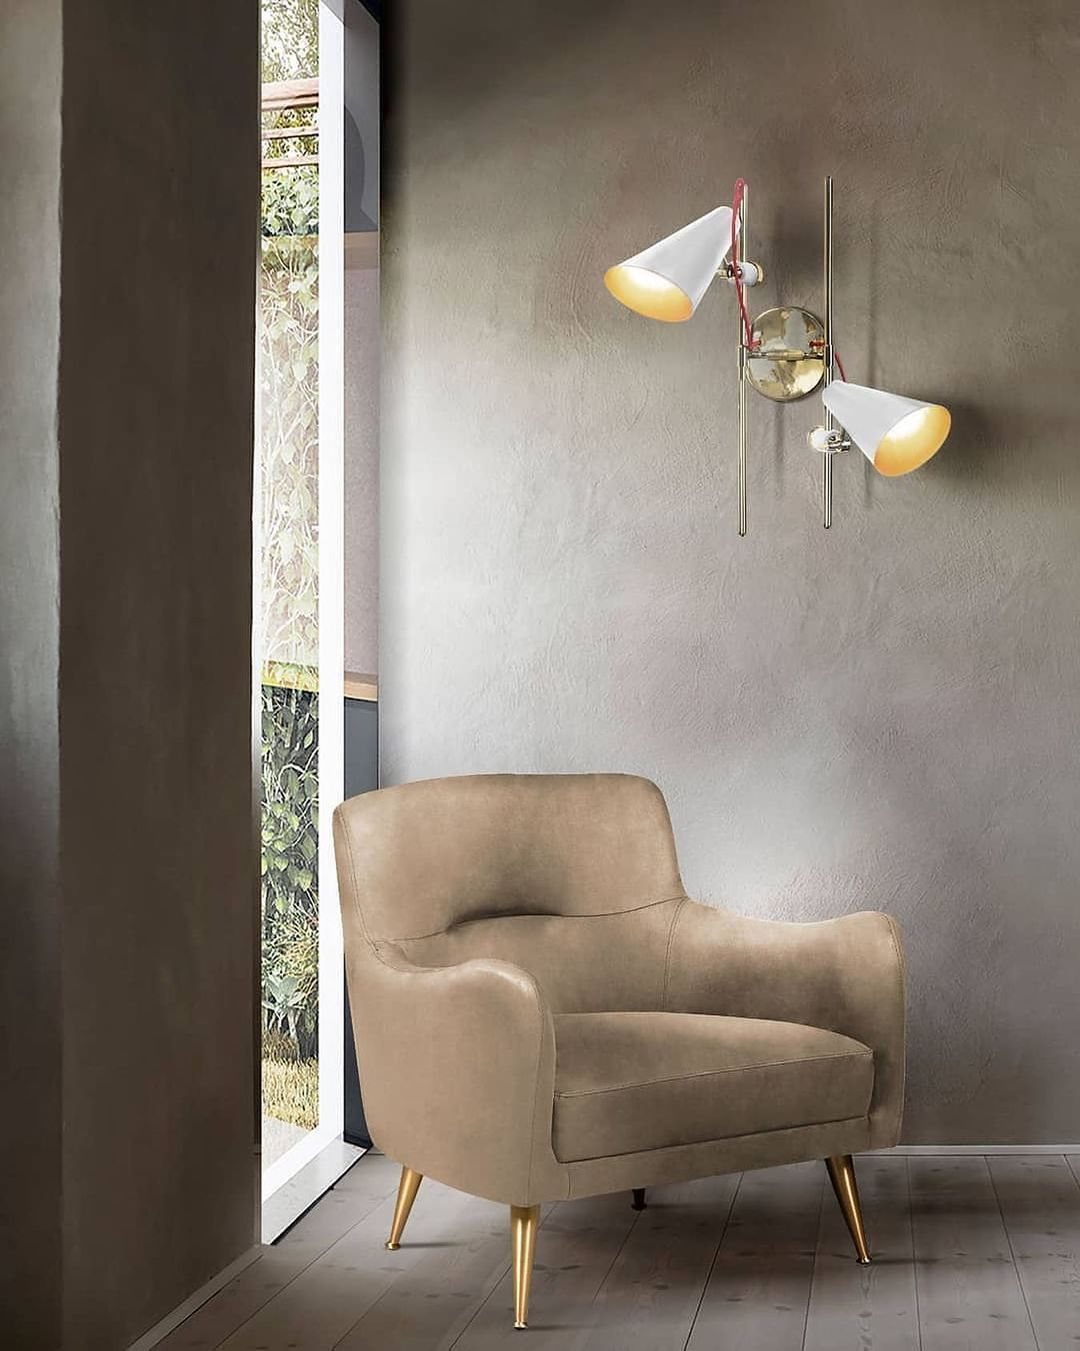 DESIRABLE MID-CENTURY MODERN PIECES TO GET YOU INSPIRED